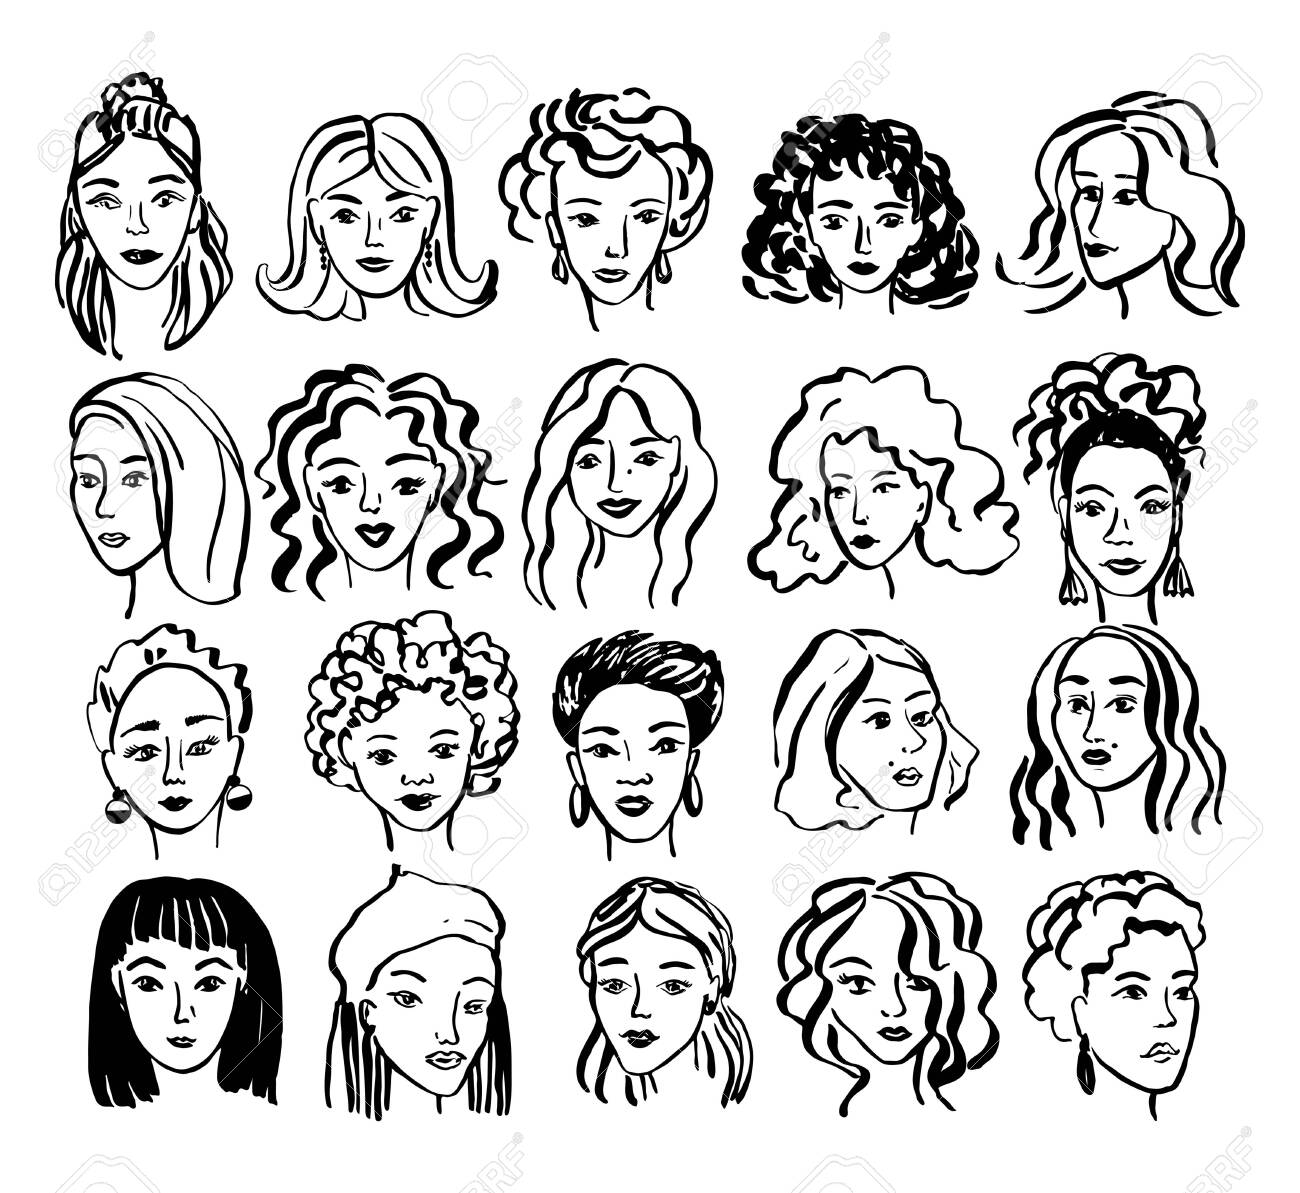 Hand drawn face collection. Trendy woman face set with abstract line shapes, minimal girl face. Vector stylized design illustration - 145775832